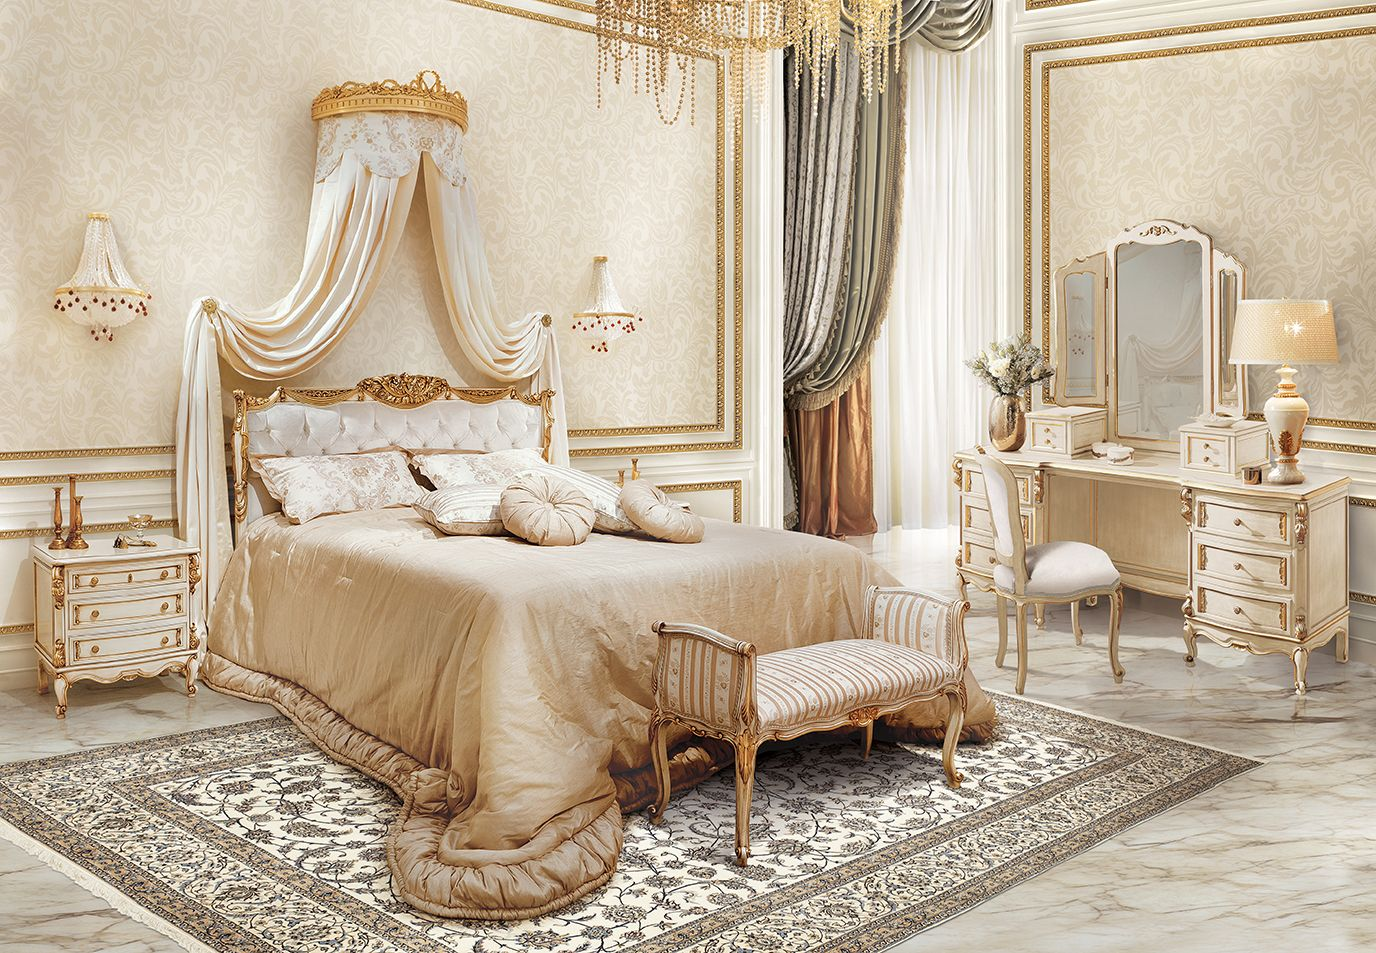 SCHUMANN Luxury elegant italian bedroom furniture | For the ...